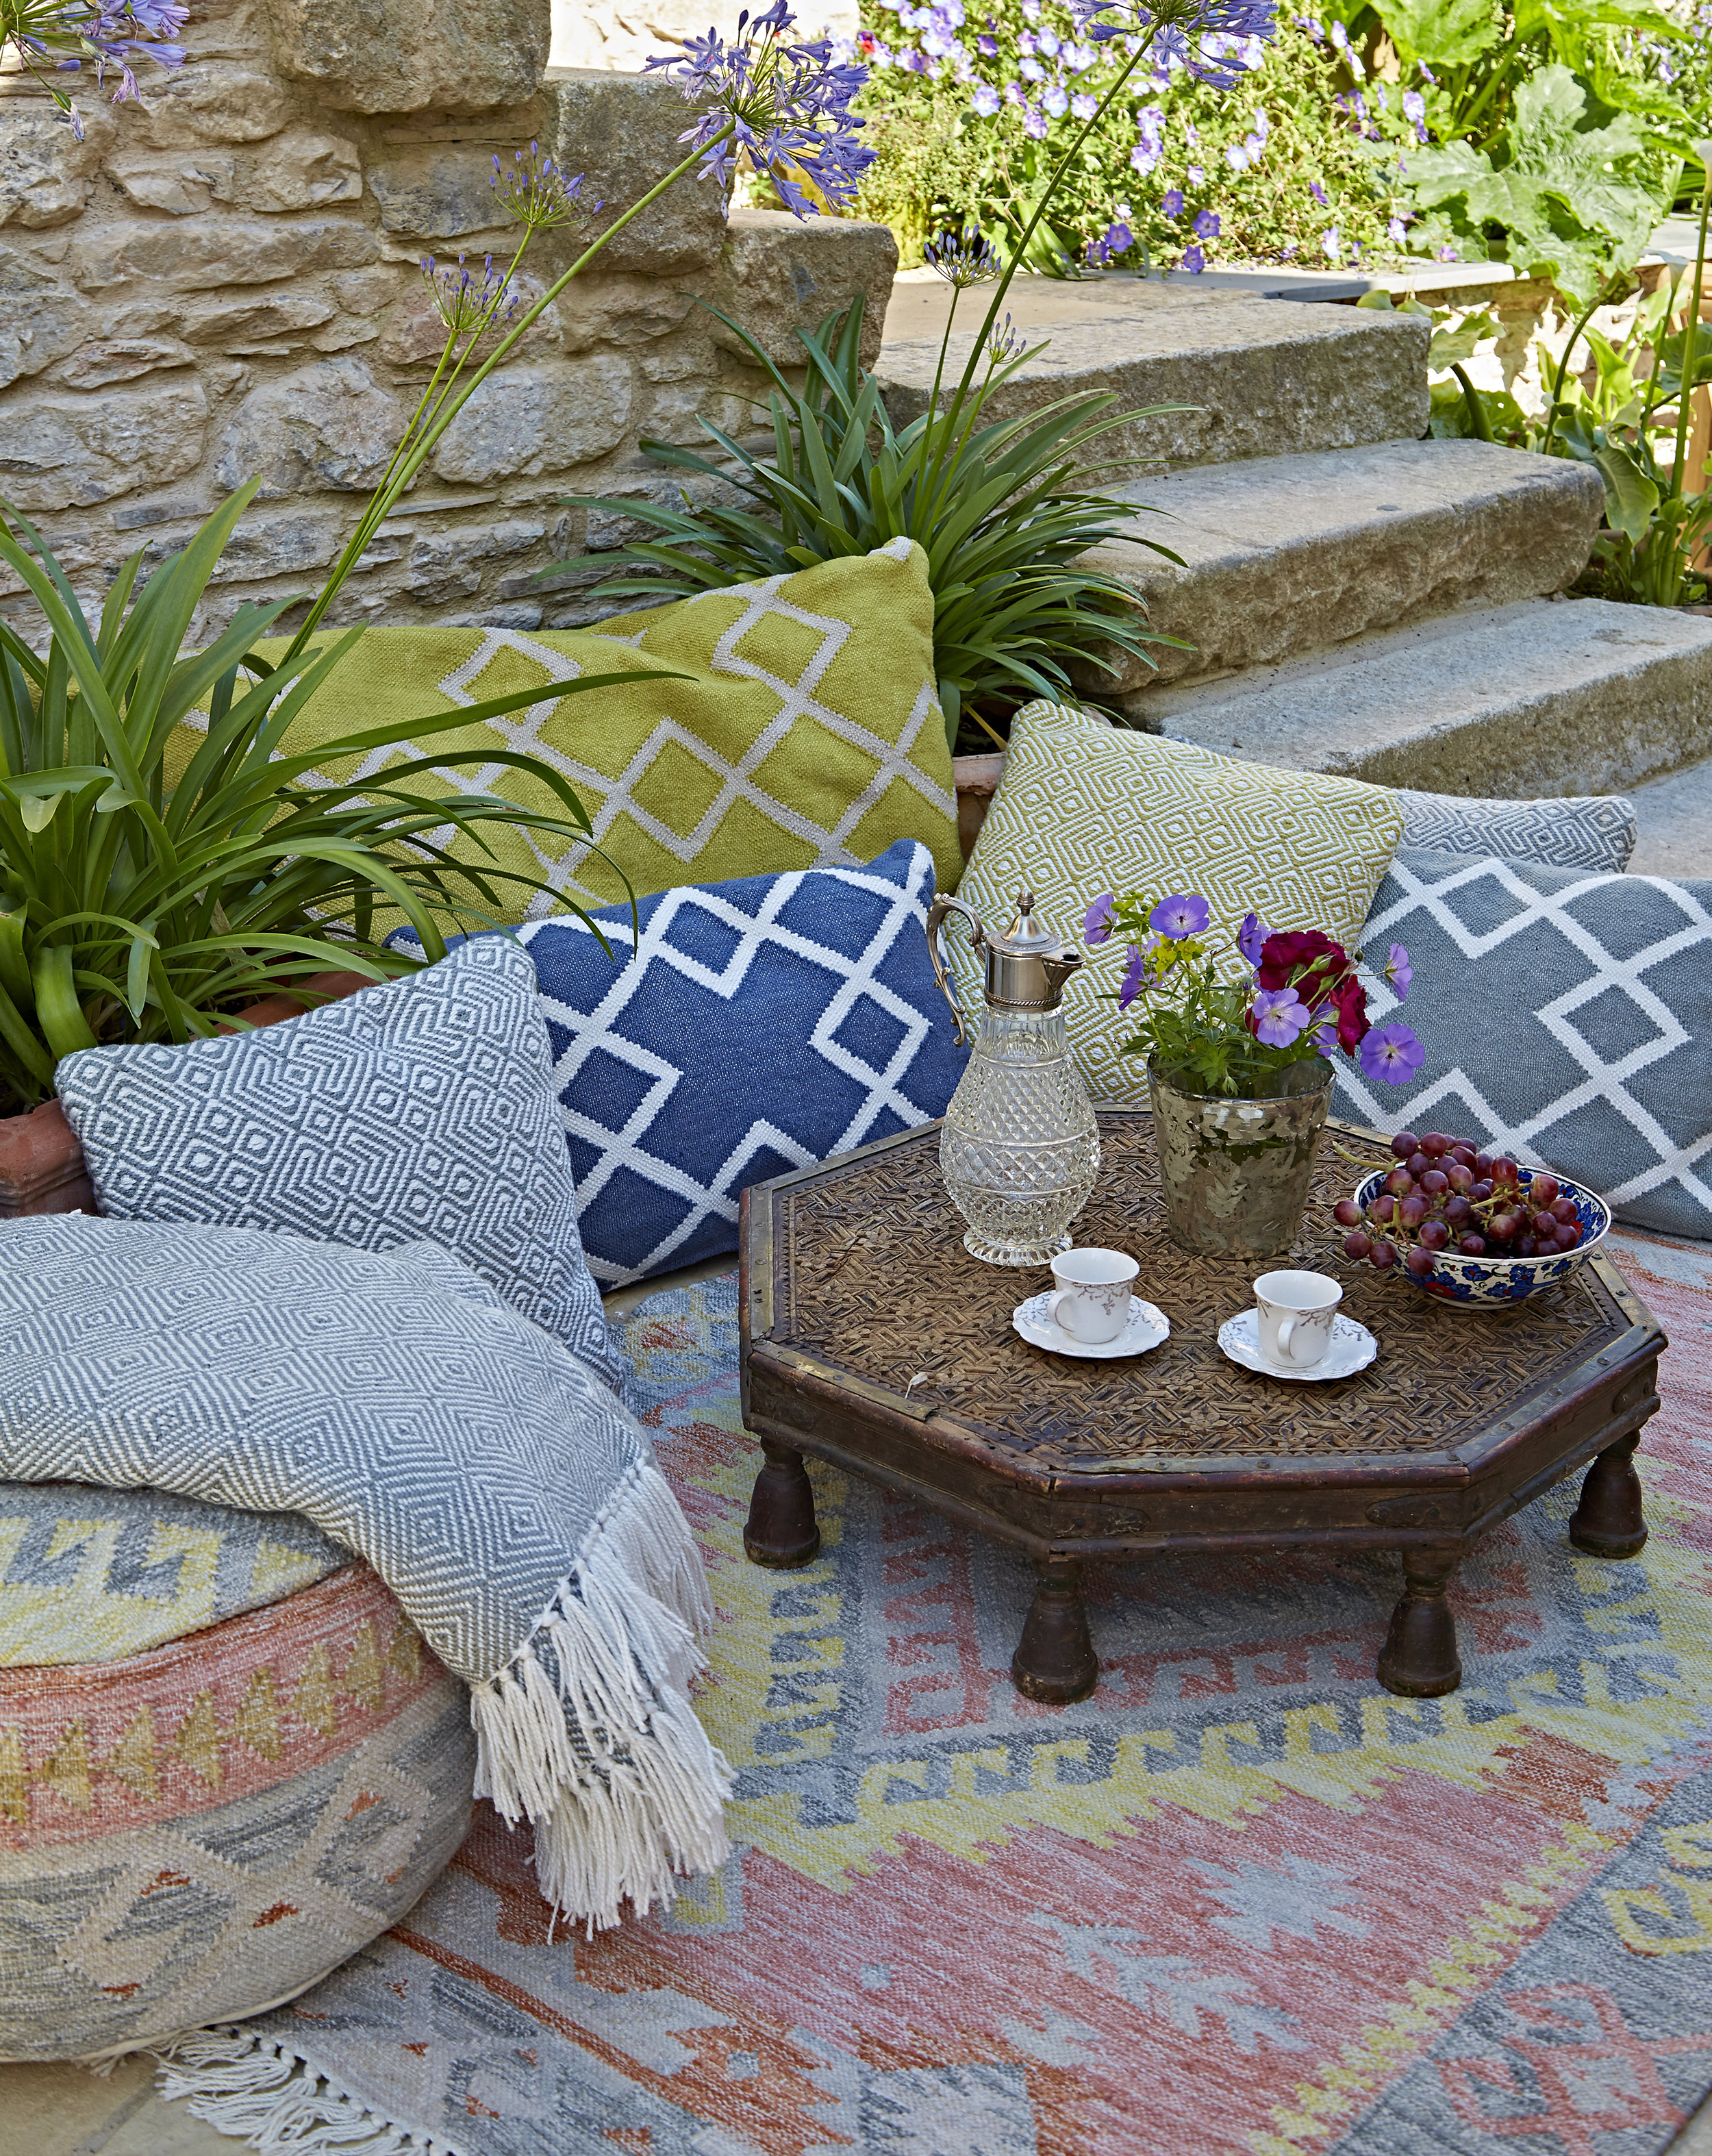 Stunning rugs, throws and cushions from Weaver Green, made from recycled plastic bottles.